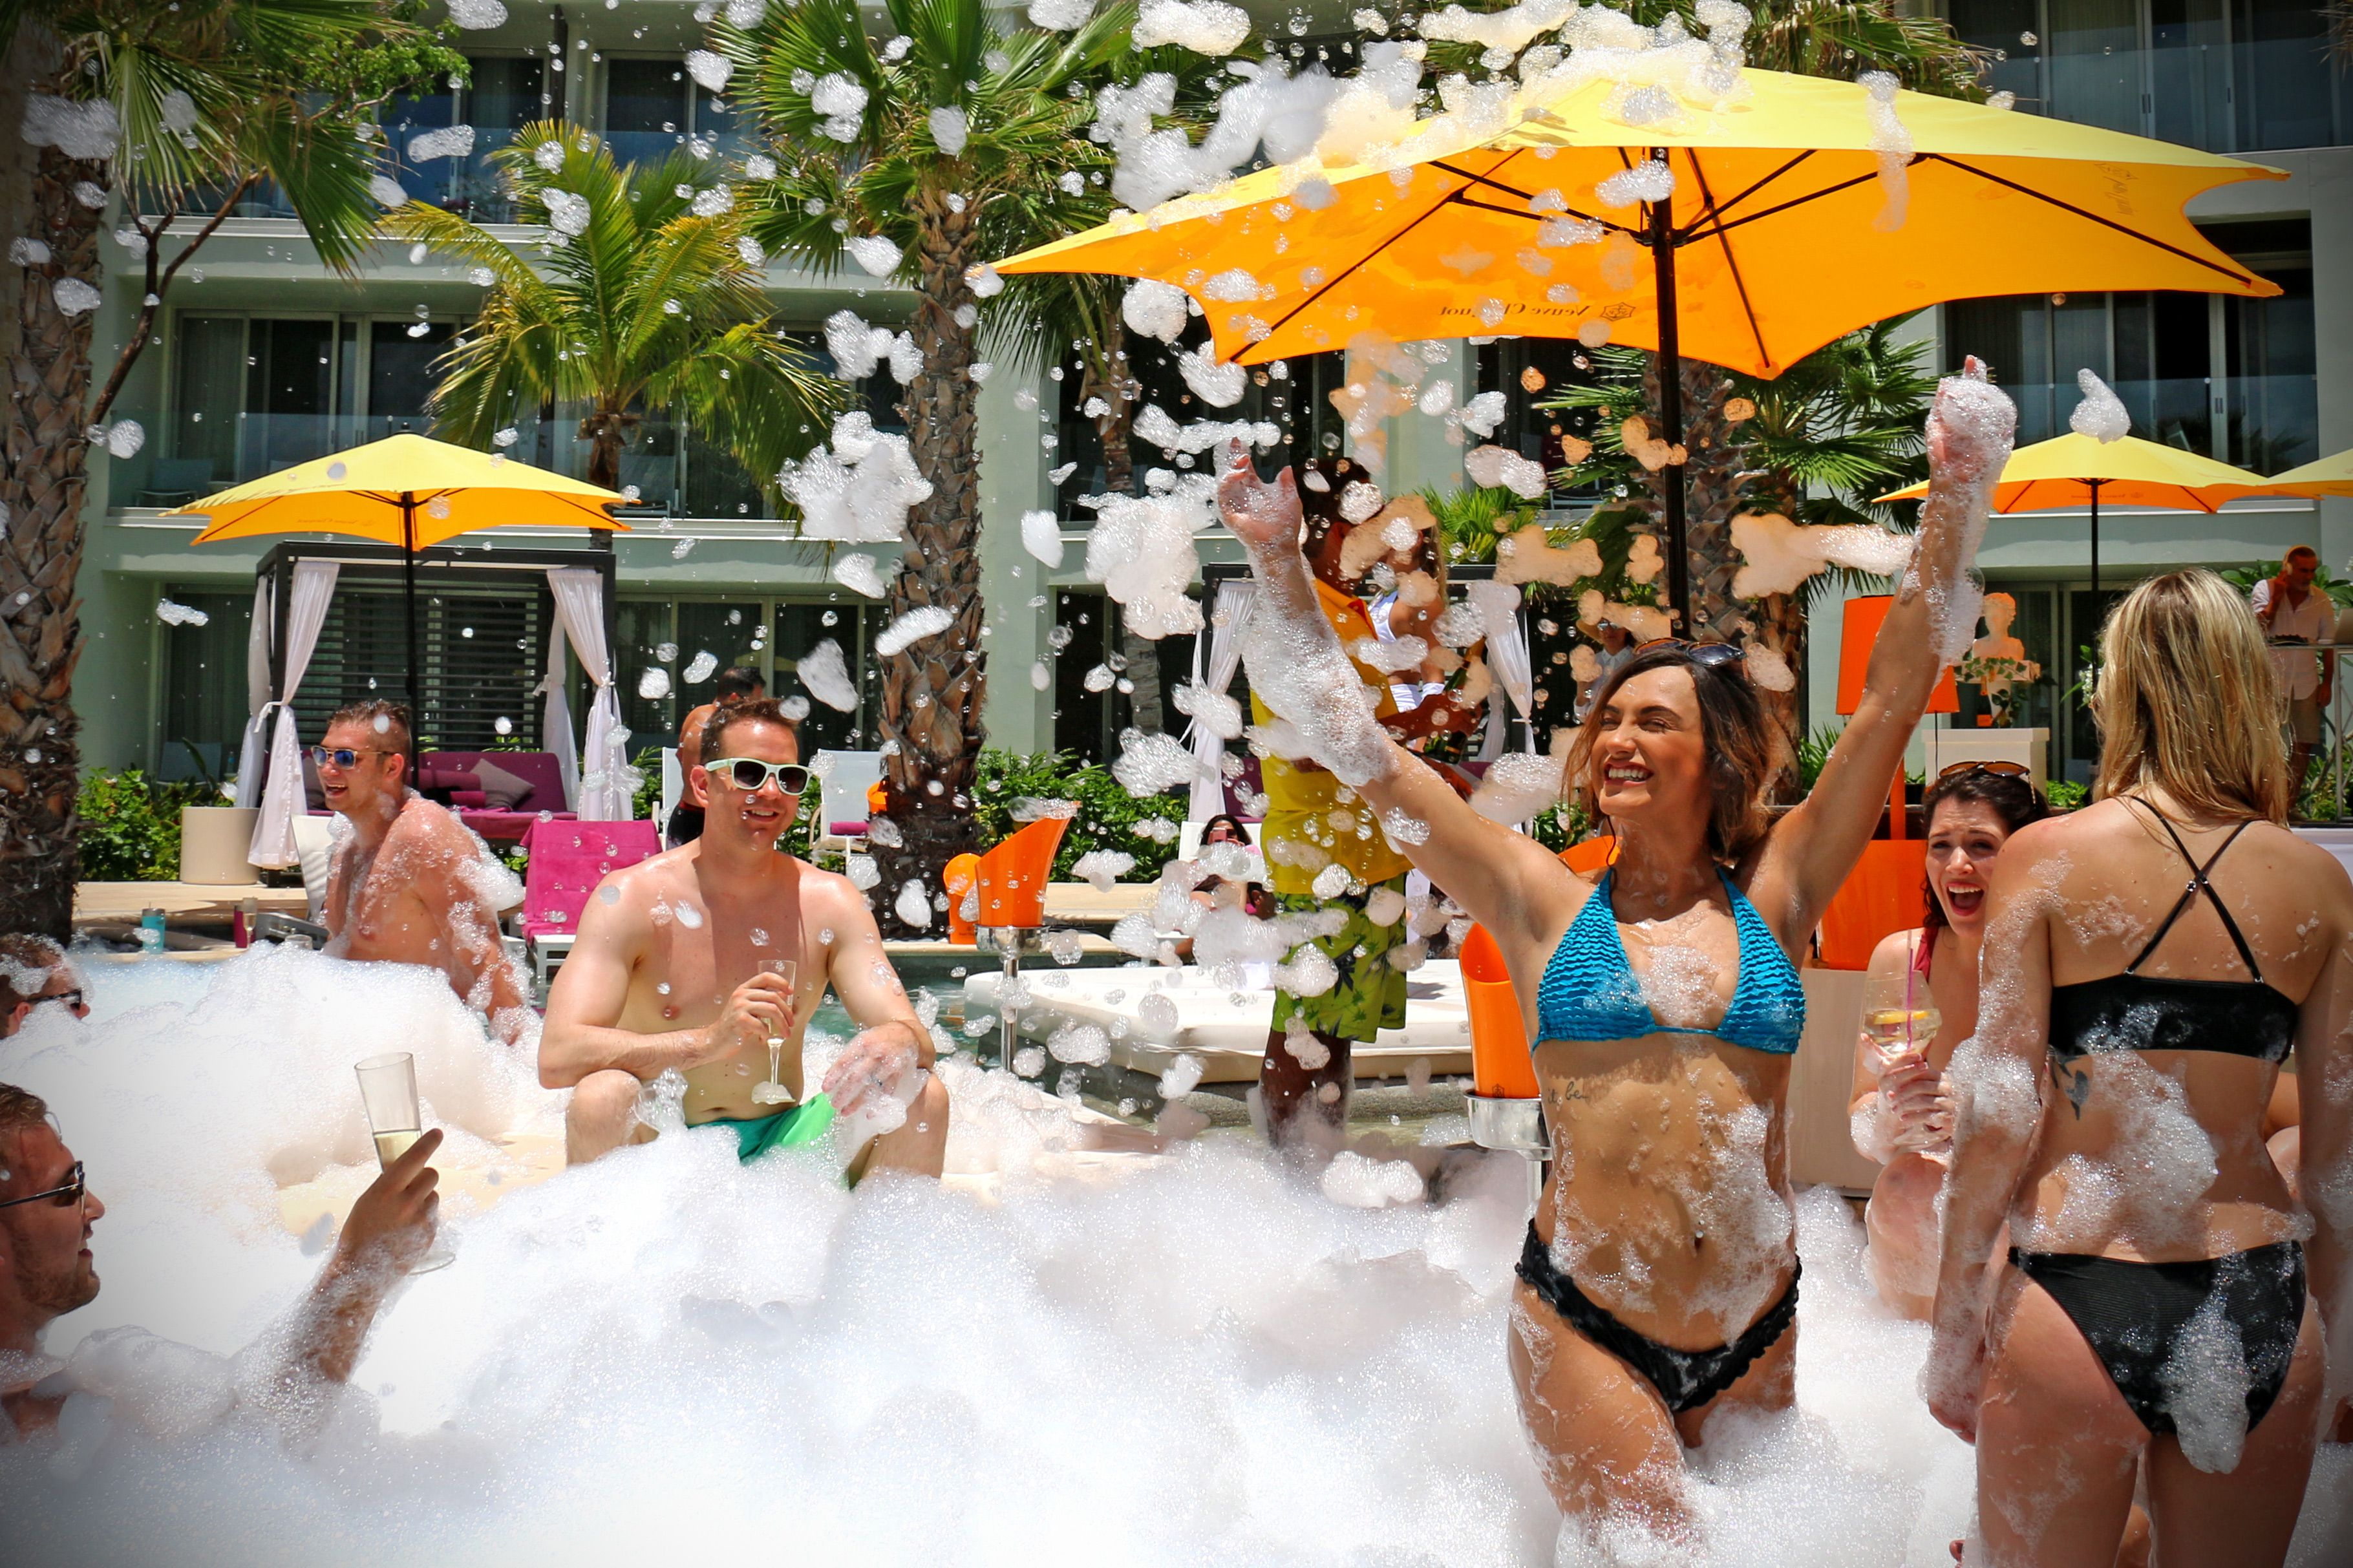 Splash Around In The Foam Party At Breathless Riviera Cancun For The Ultimate Bachelorette Party Riviera Cancun Riviera Cancun Resort Cancun Resorts